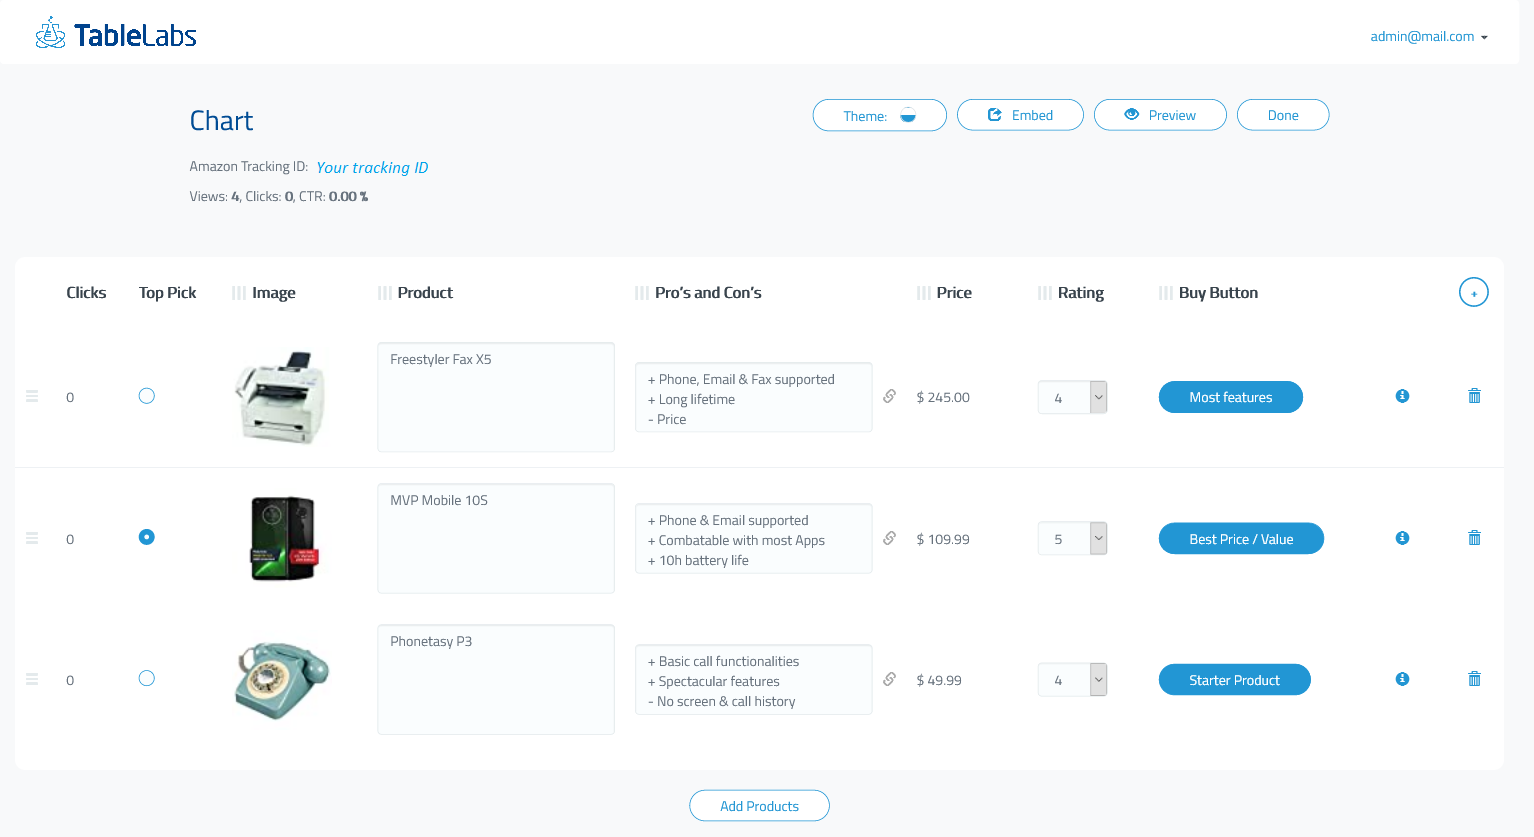 Personalize product compare chart by tailoring descriptions and the order of your table.